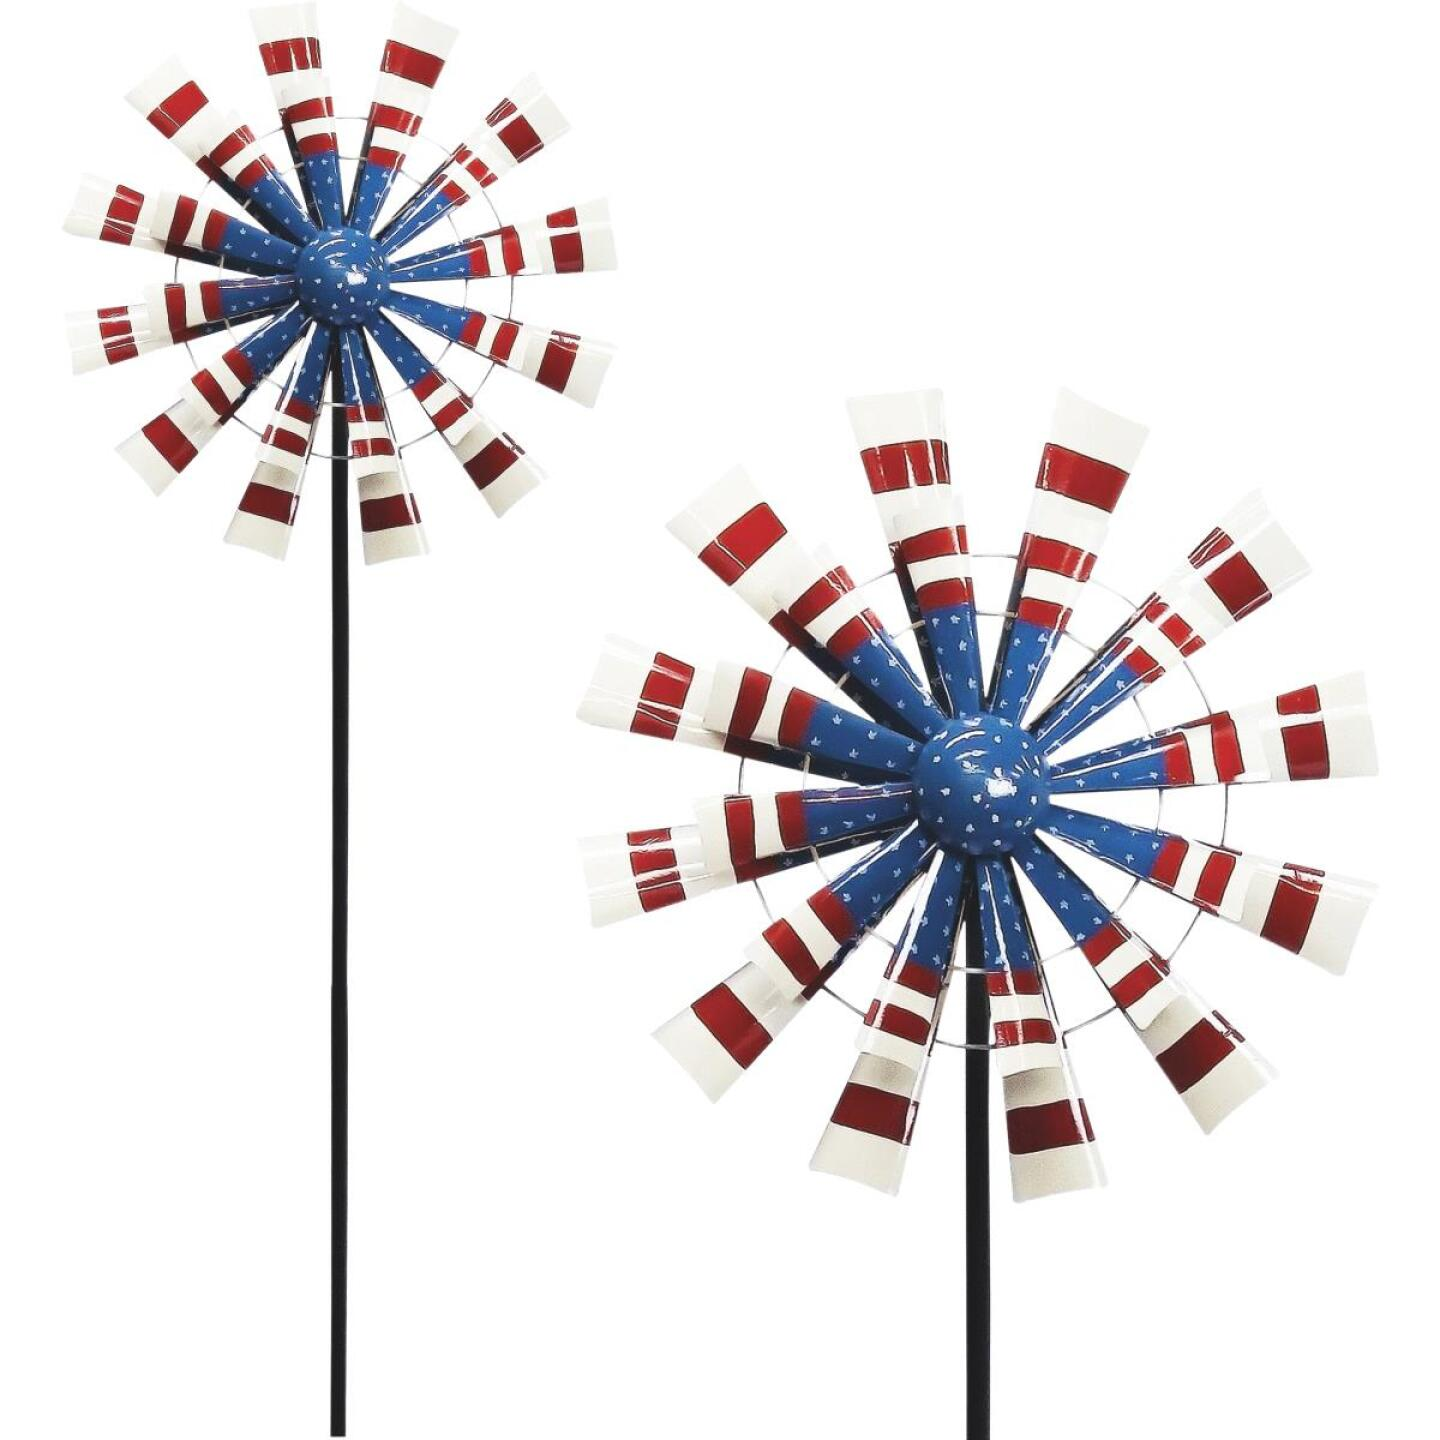 Alpine 75 In. H. Metal Patriotic Windmill Garden Stake Lawn Ornament Image 1